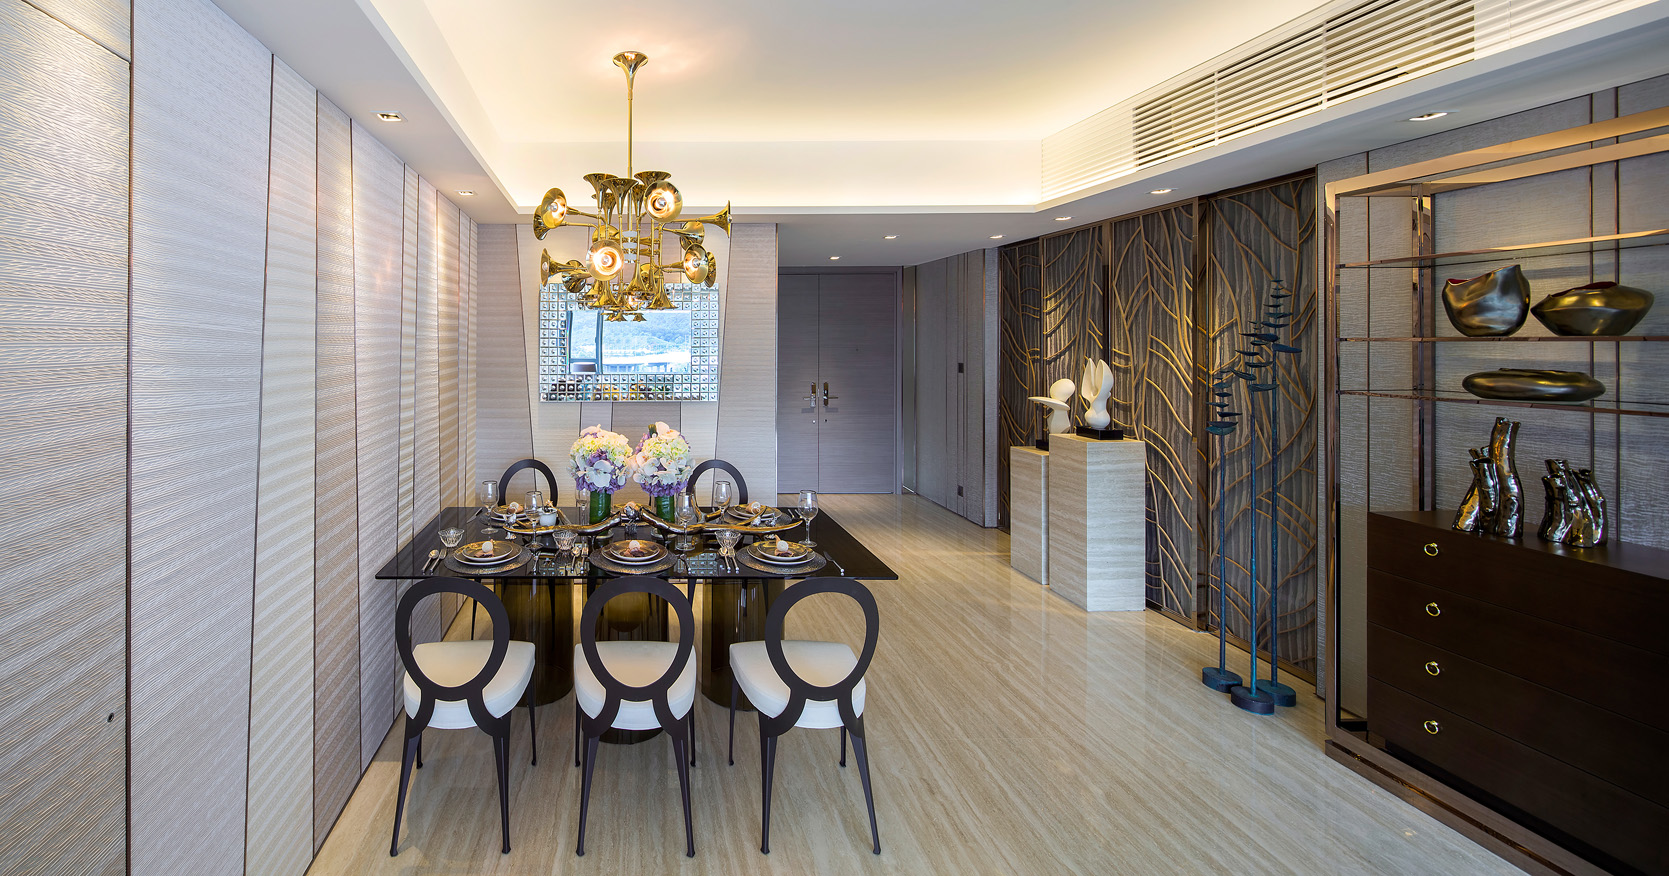 Lighting Ideas Delightfull Botti Dining Room Dining Room Lighting Ideas For  A Luxury Interior Dining Room